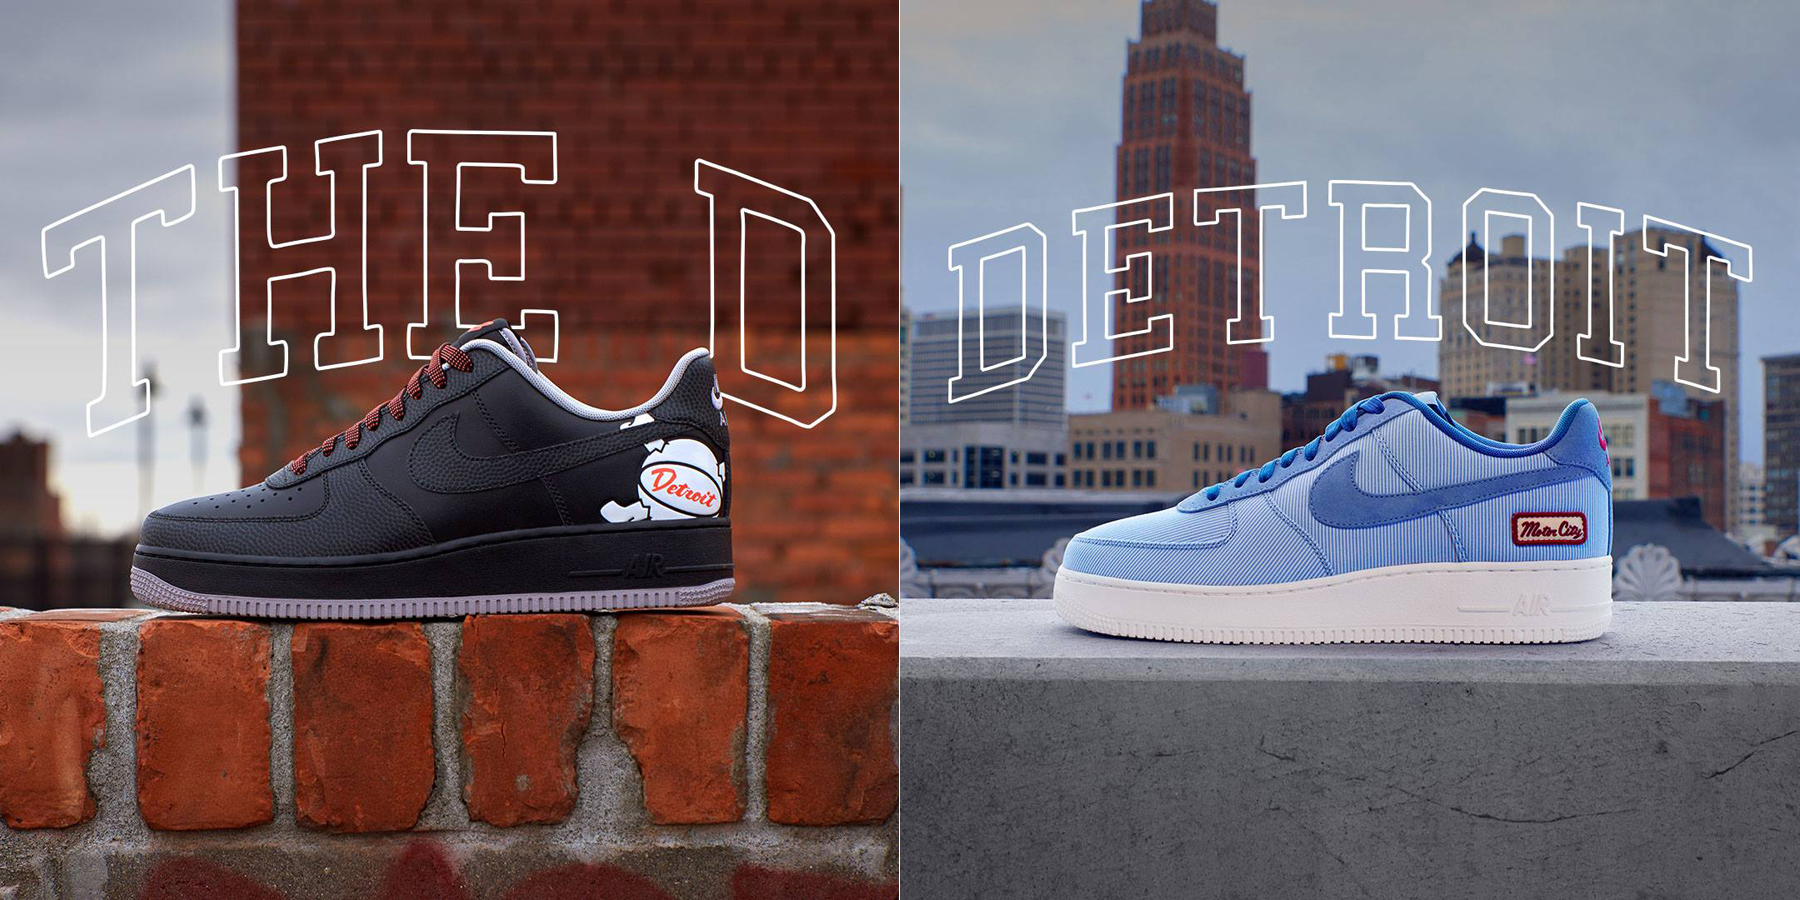 nike-air-force-1-detroit-city-home-away-where-to-buy